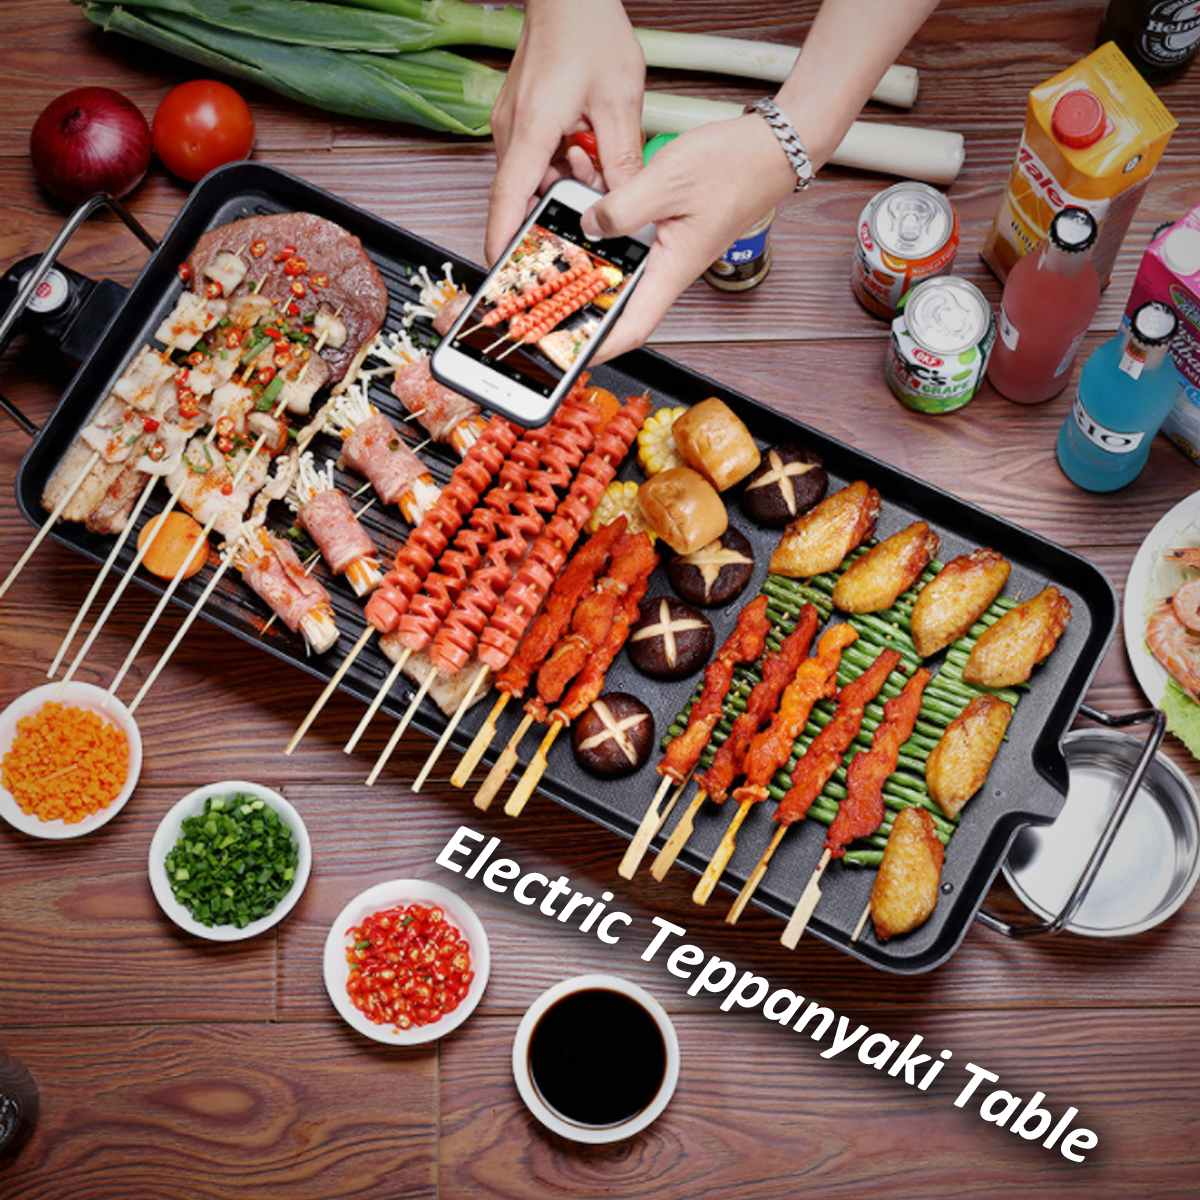 Portable Smokeless Electric Barbecue Grill Adjustable Temperature Non Stick Electric Teppanyaki Table For Dinner Party Camping